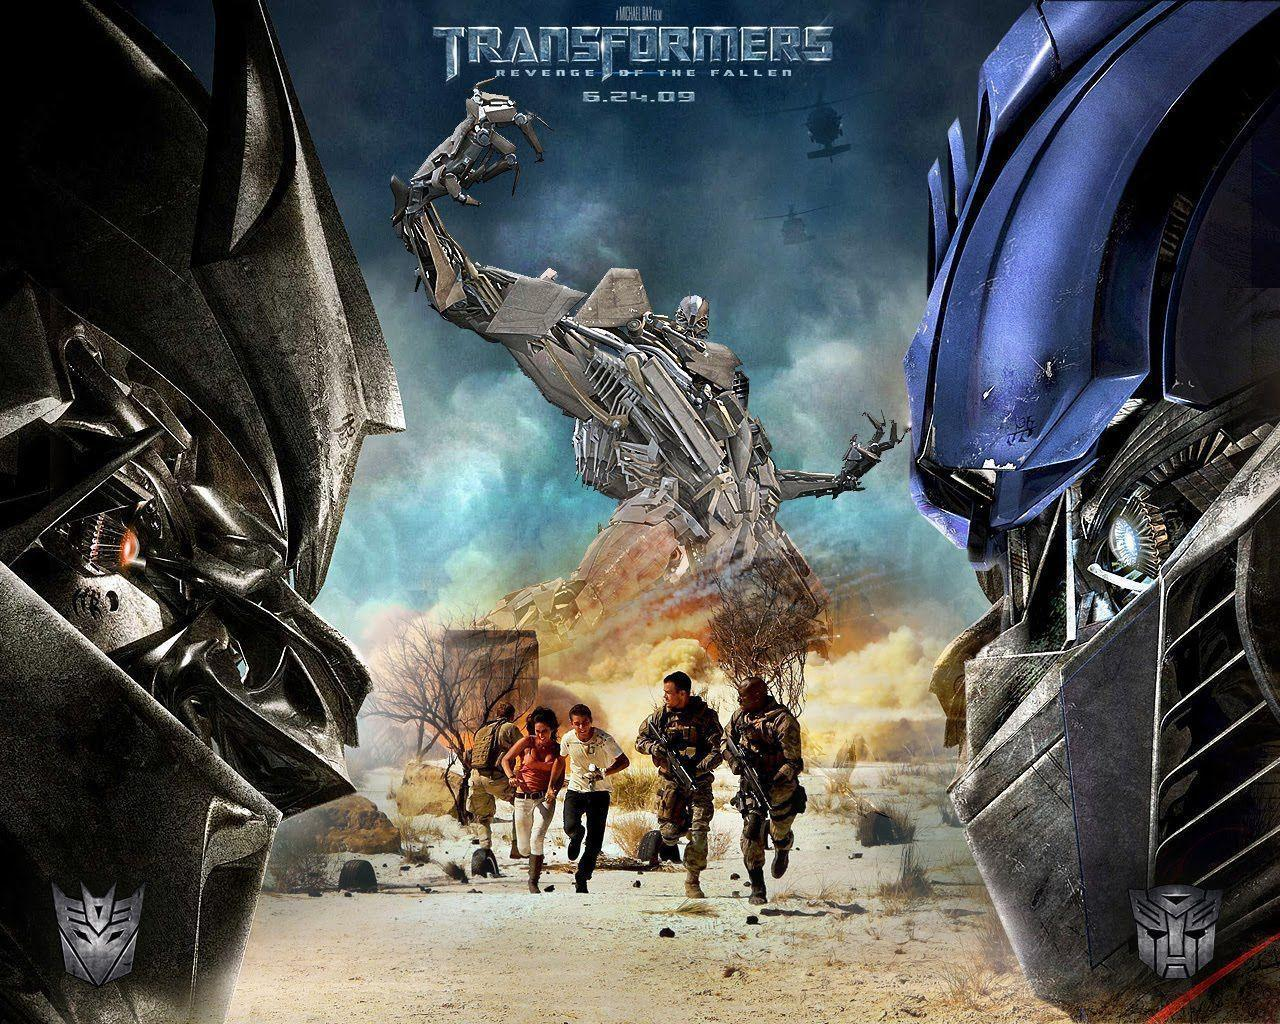 Free transformers wallpapers wallpaper cave - Free transformer wallpaper ...